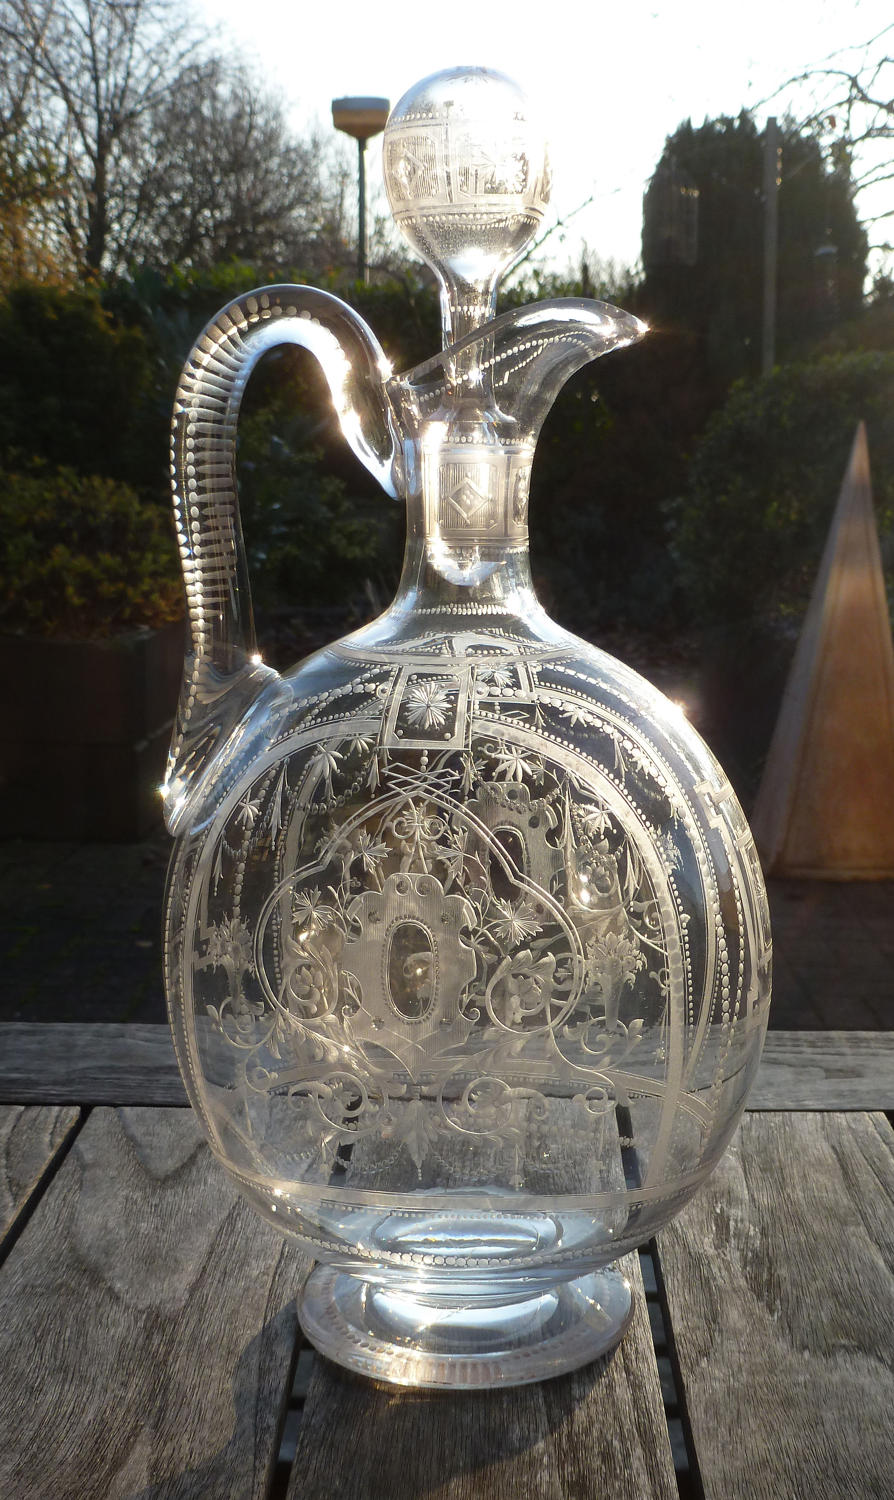 6606 A very finely engraved magnum claret jug/flask, c.1880